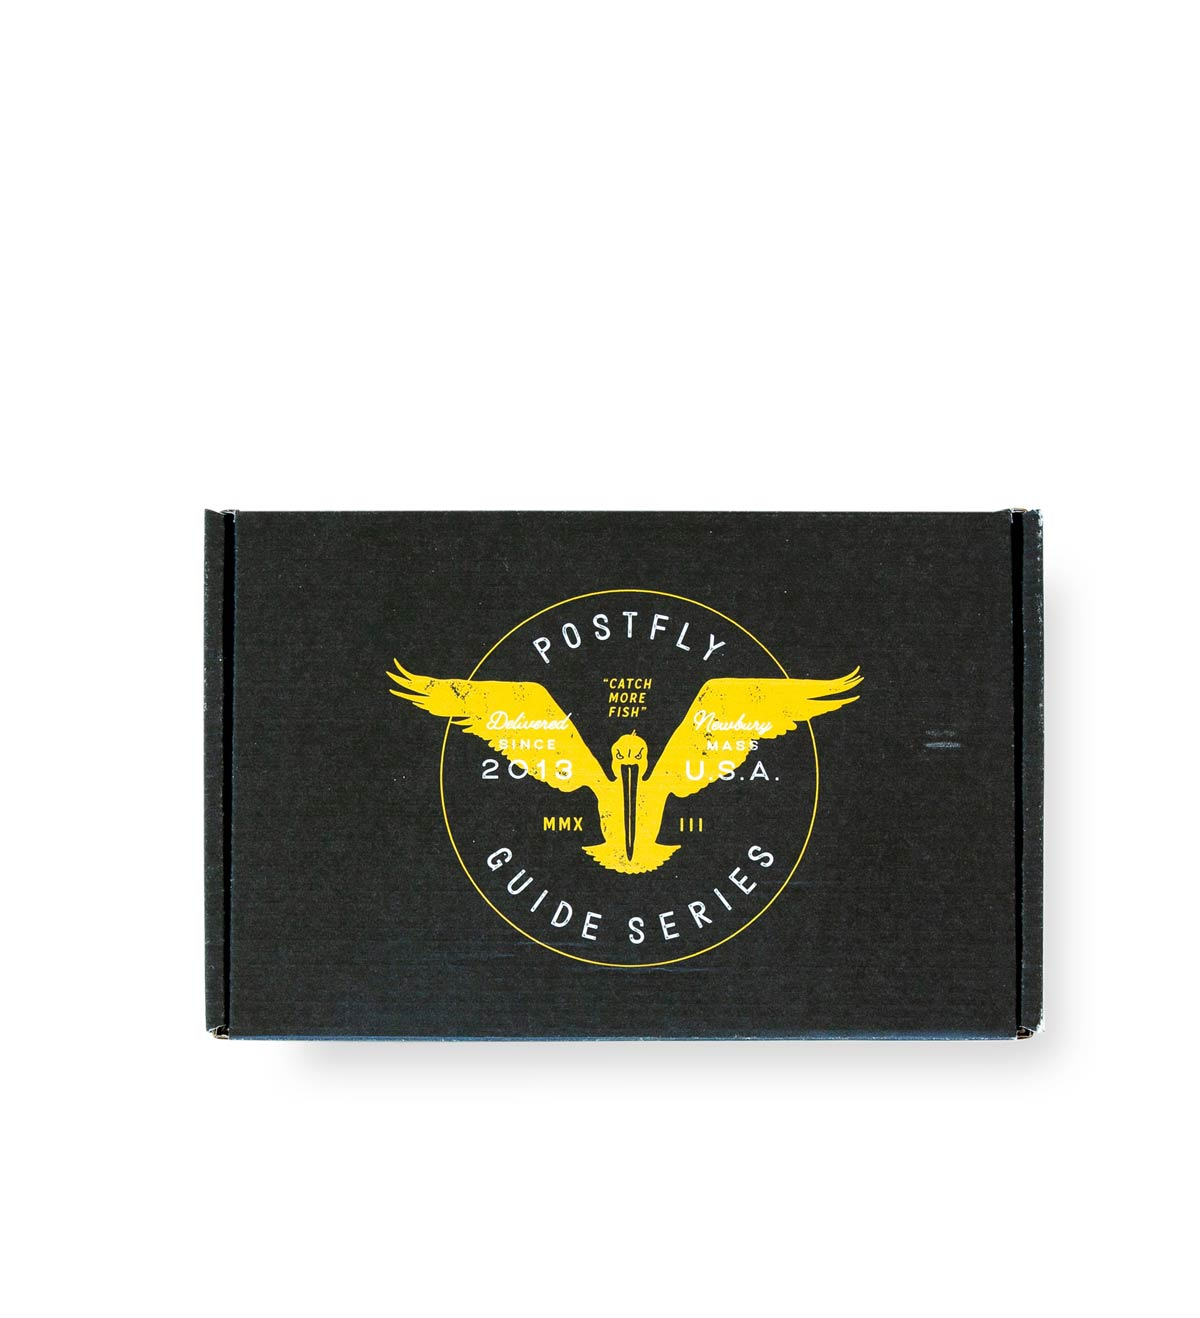 Postfly Open Box Filled With Gear